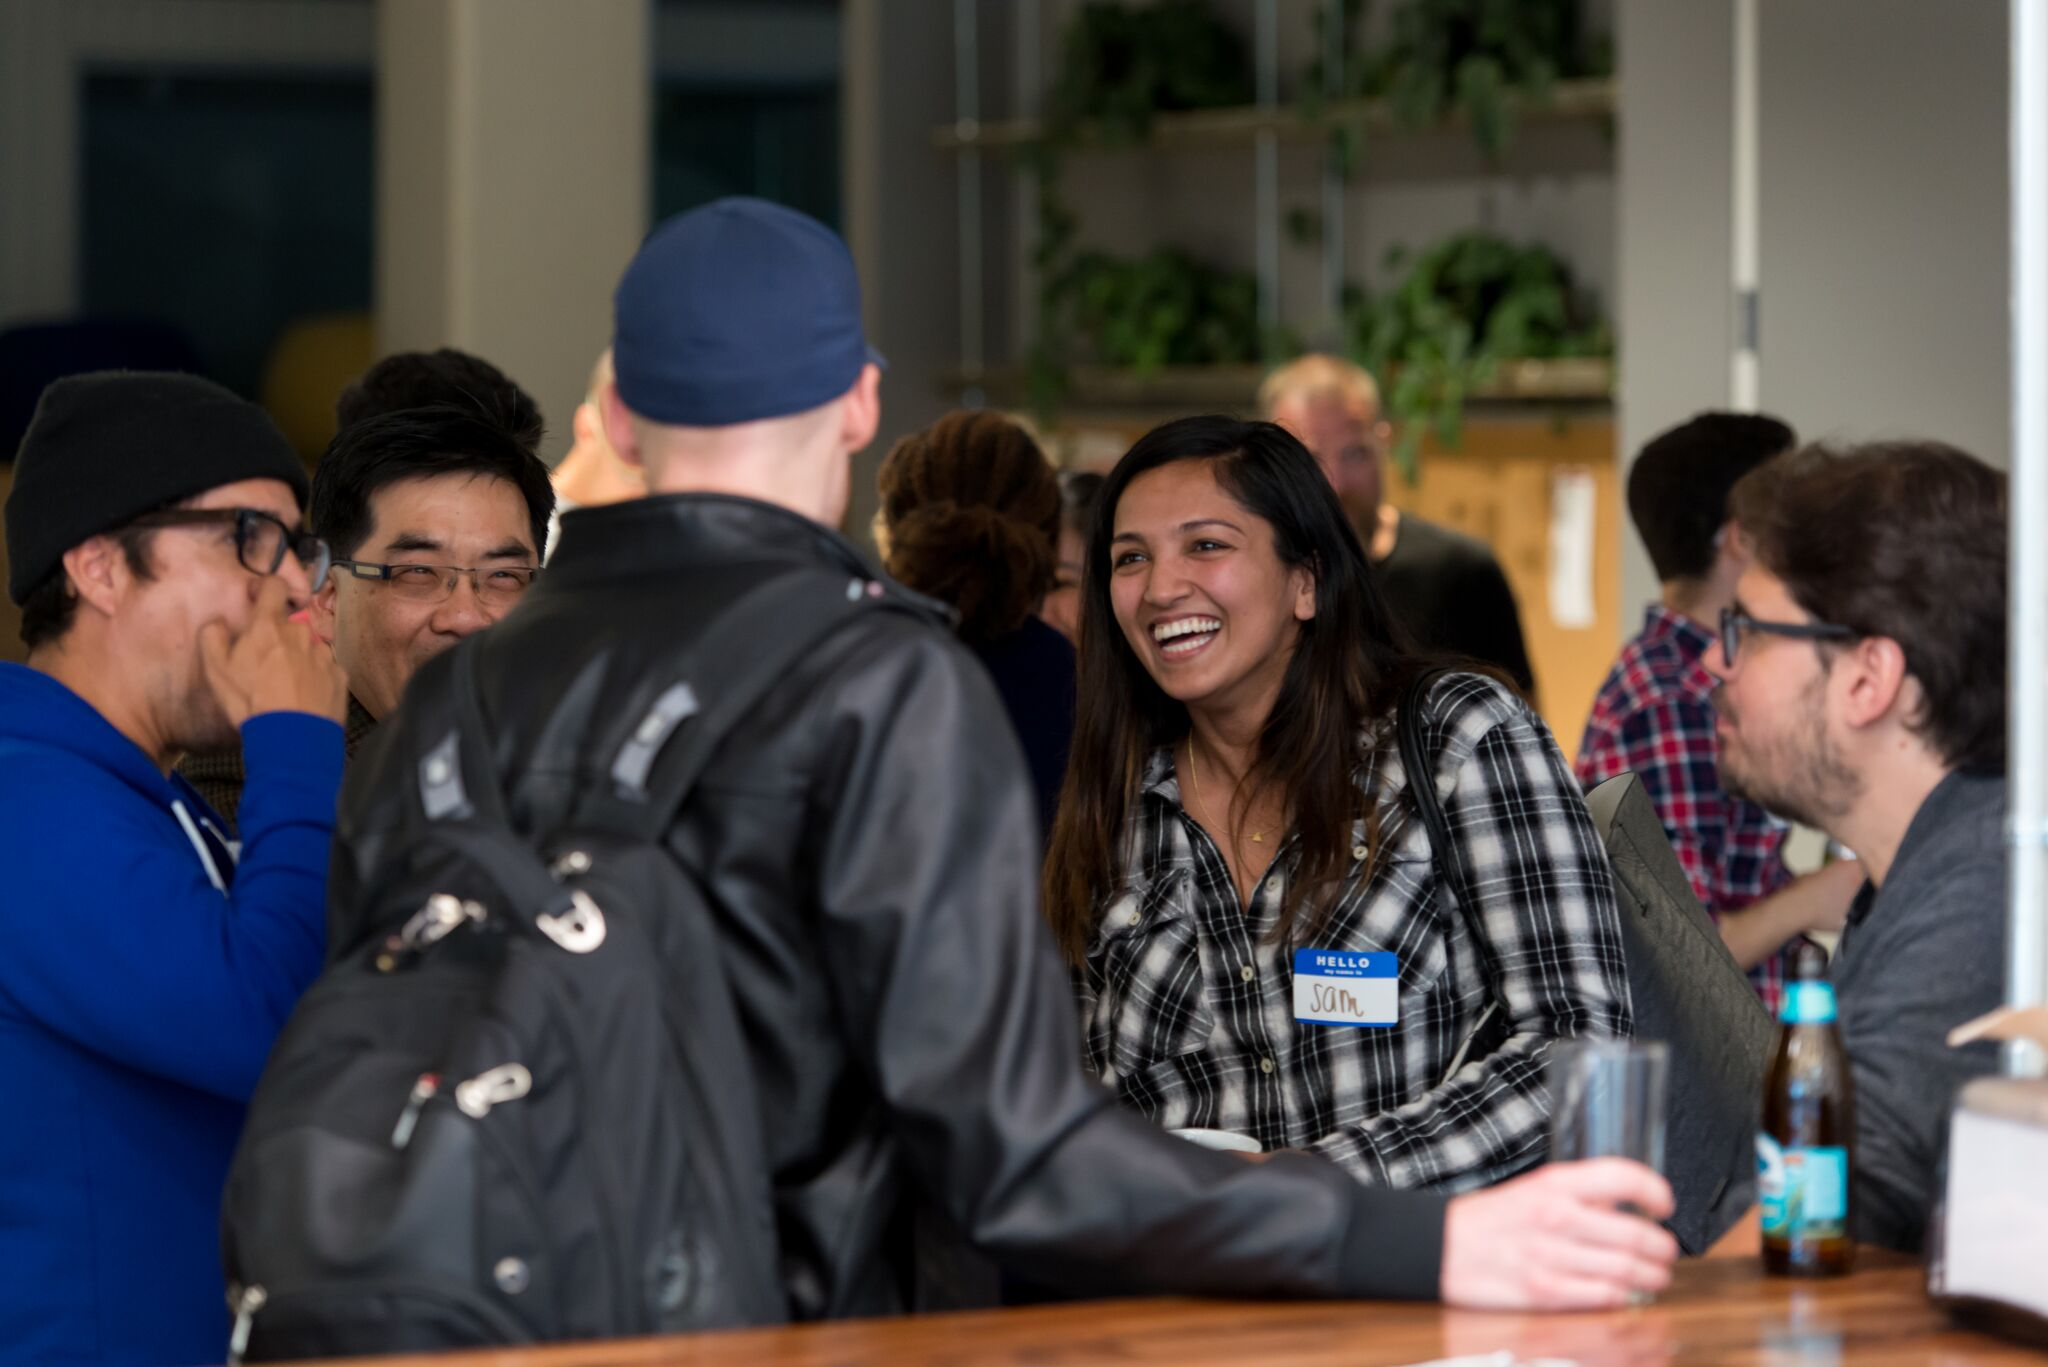 Cloudflare Wants to Buy Your Meetup Group Pizza